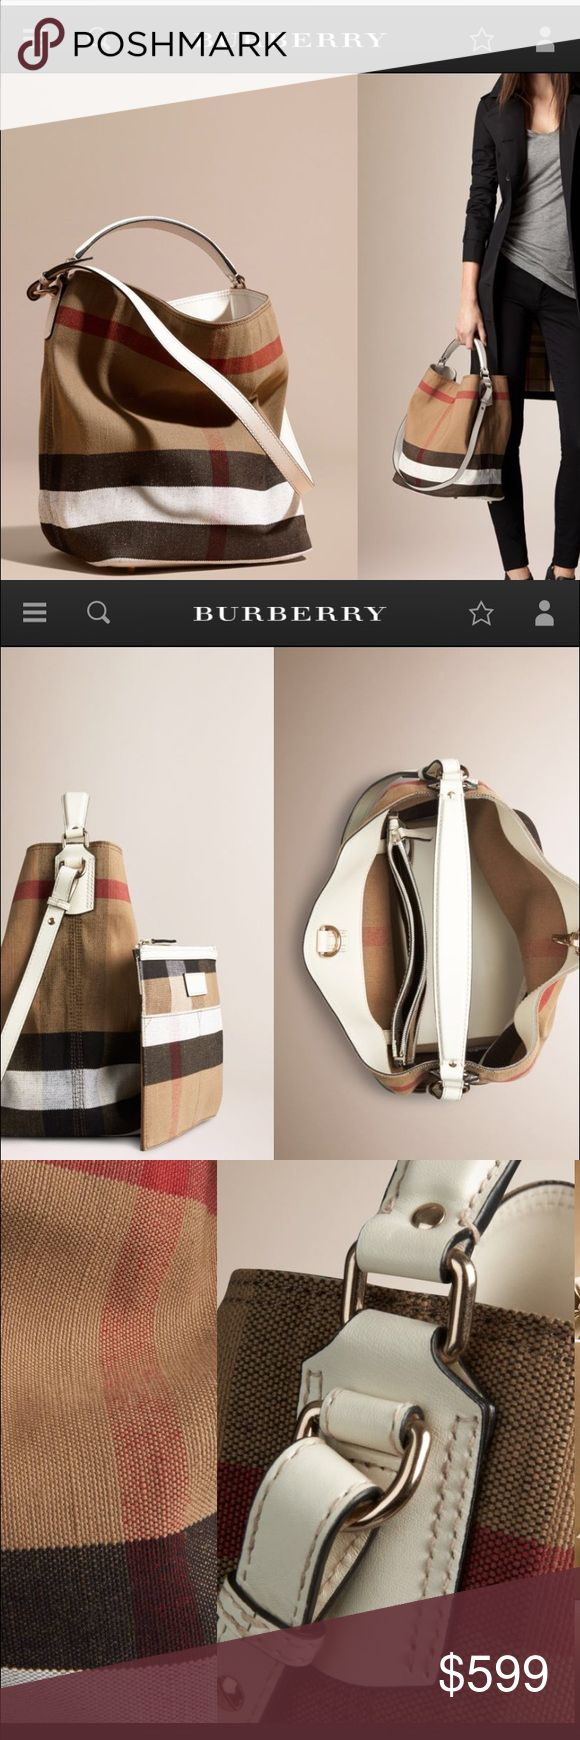 Burberry Limited Edition Medium Ashby in Canvas Check and Leather <WHITE> Burberry Bags Shoulder Bags